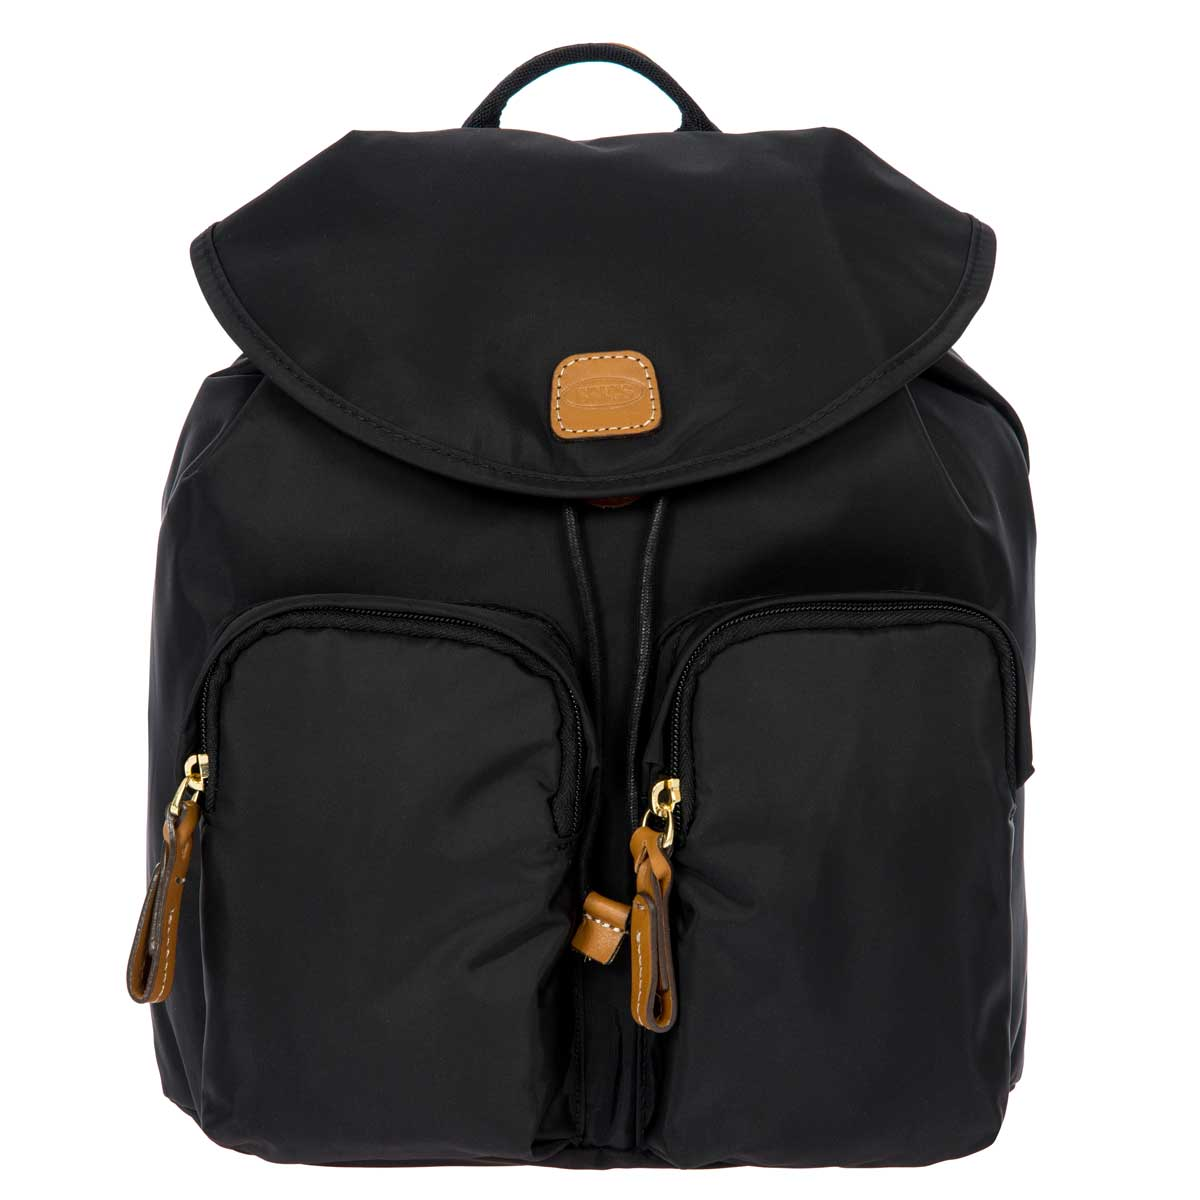 X-Travel City Backpack Piccolo by Brics (Color: Black)